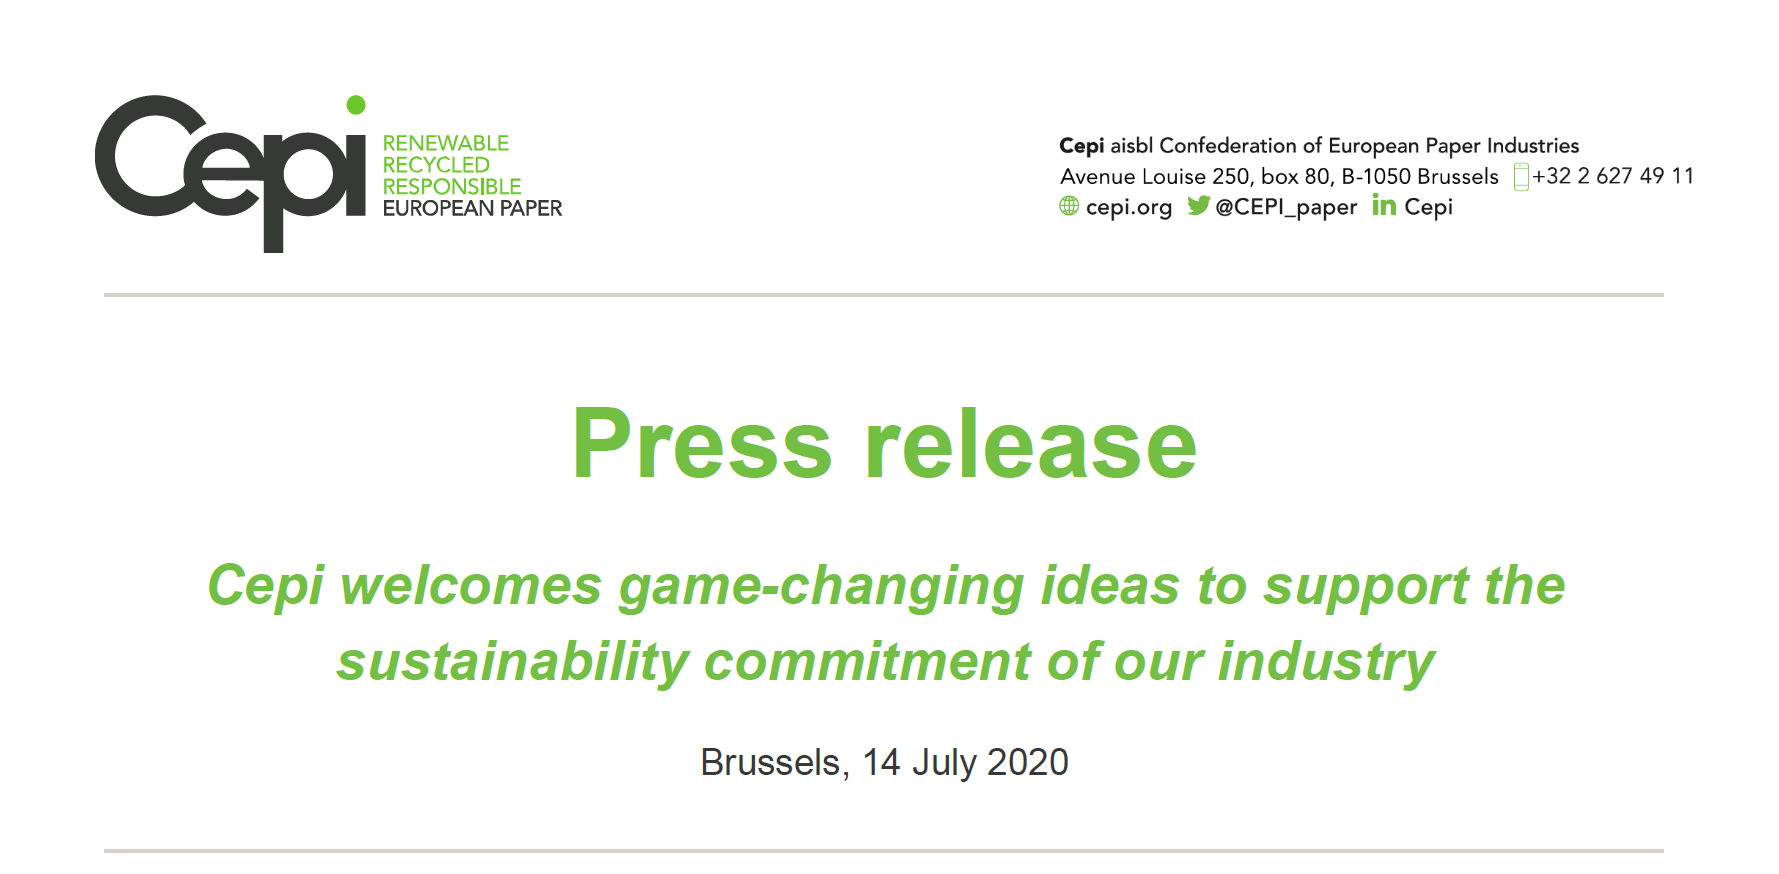 Cepi welcomes game-changing ideas to support the sustainability commitment of our industry